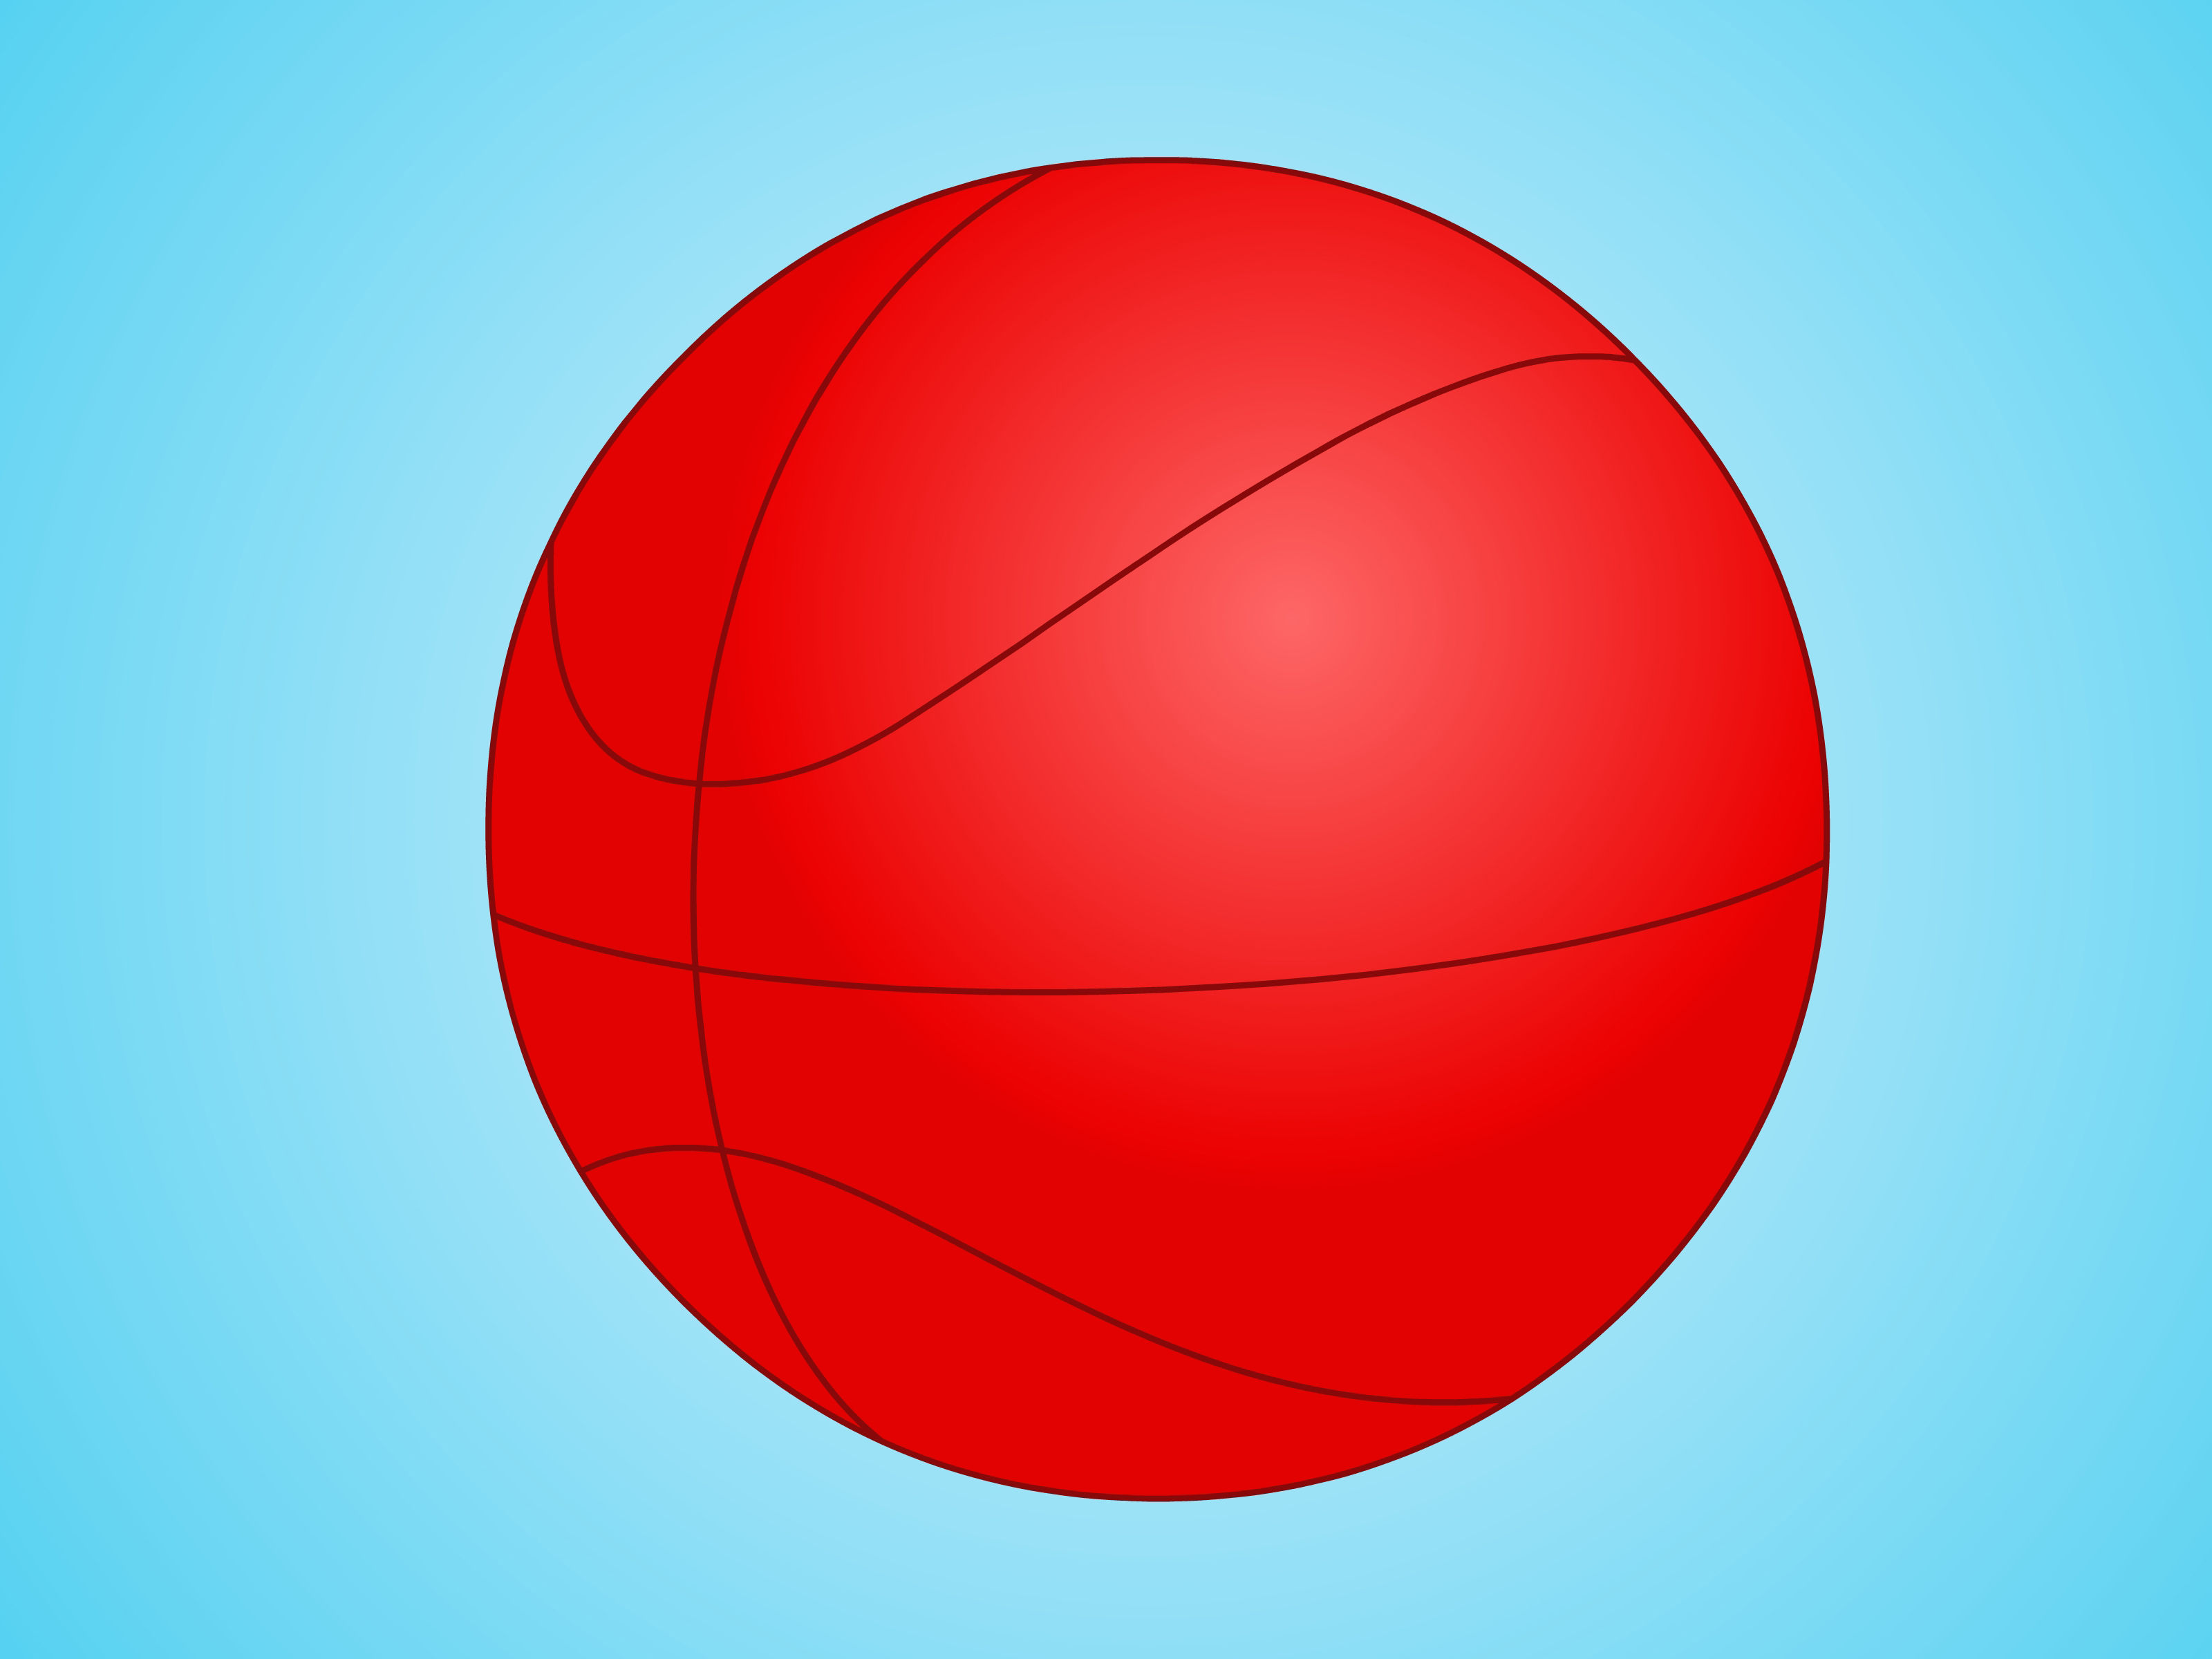 Basketball Ball How To Draw A Basketball 12 Steps With Pictures Wikihow